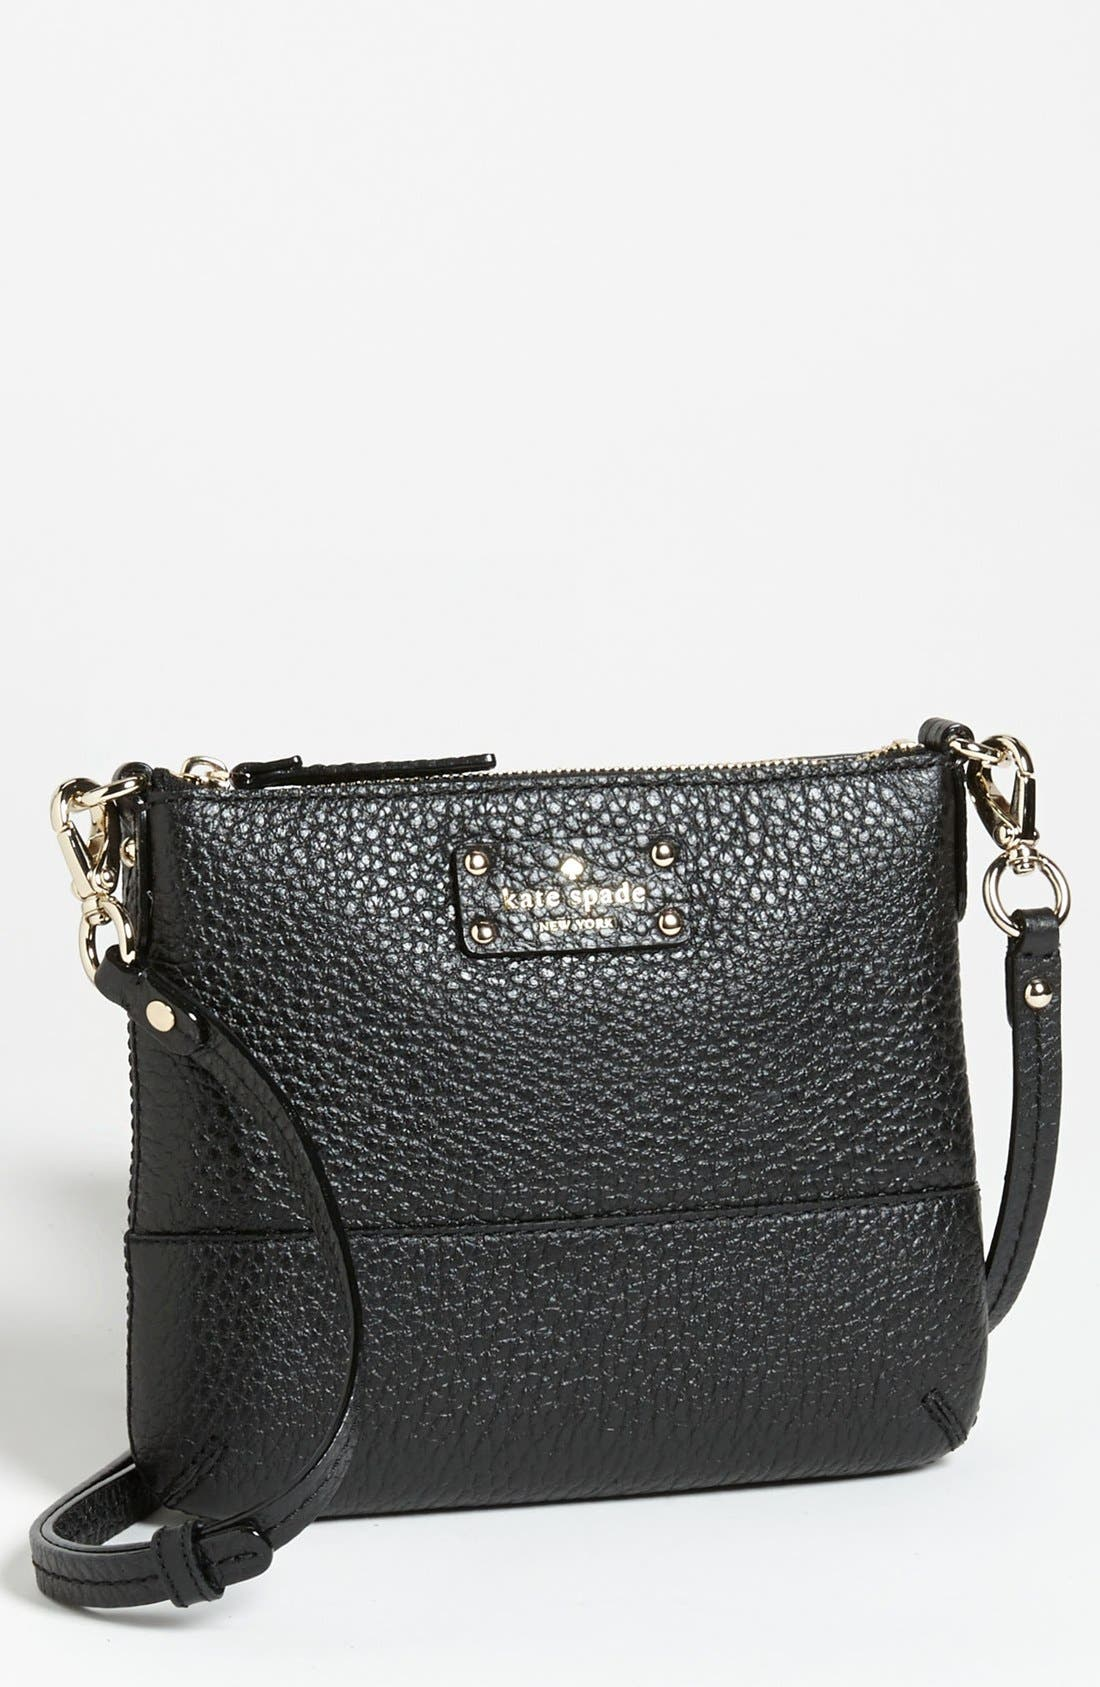 'grove park - tenley' crossbody bag,                             Main thumbnail 1, color,                             001